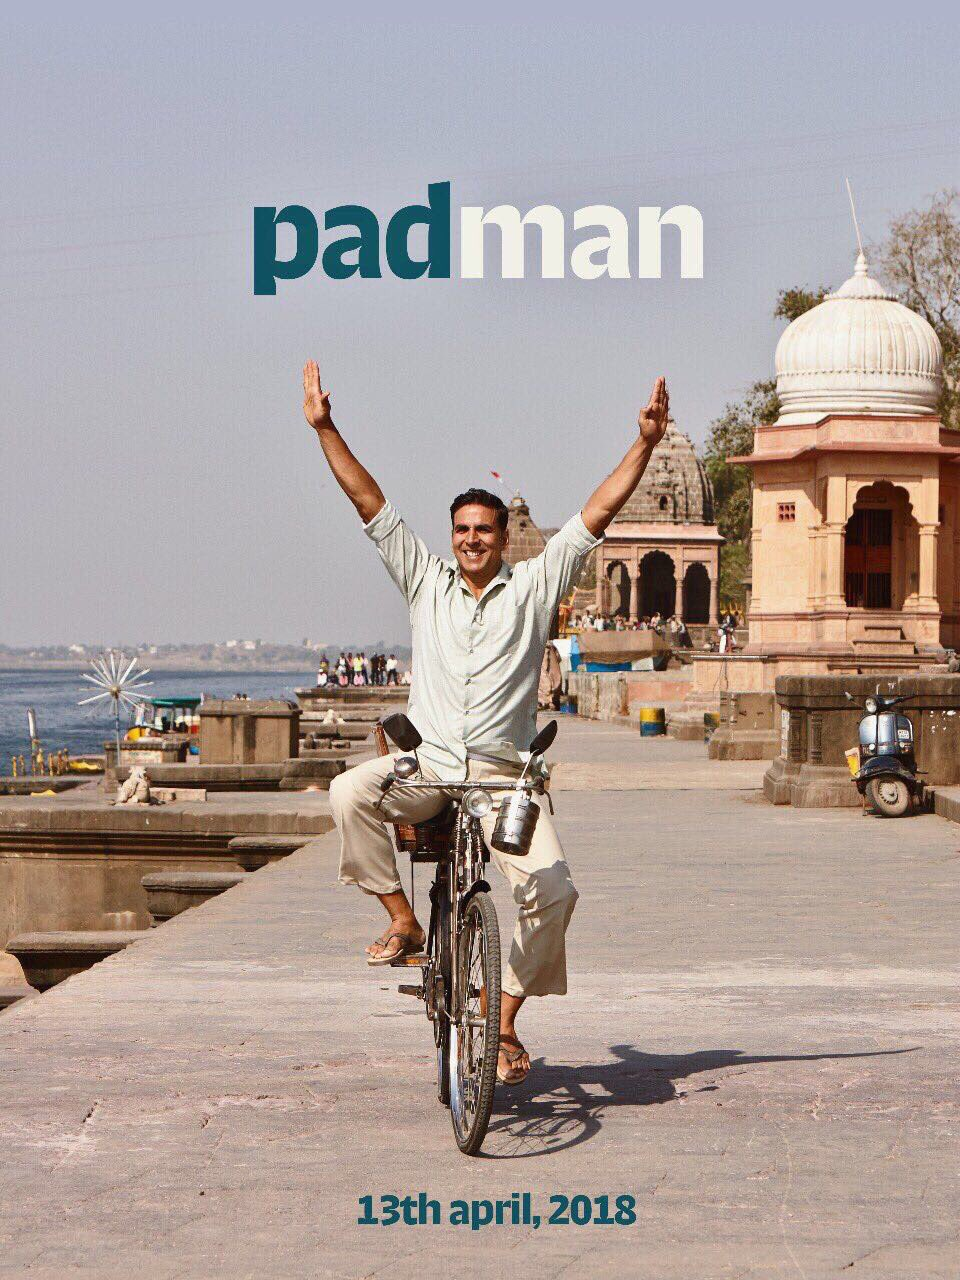 First Look Poster of Movie 'Padman'